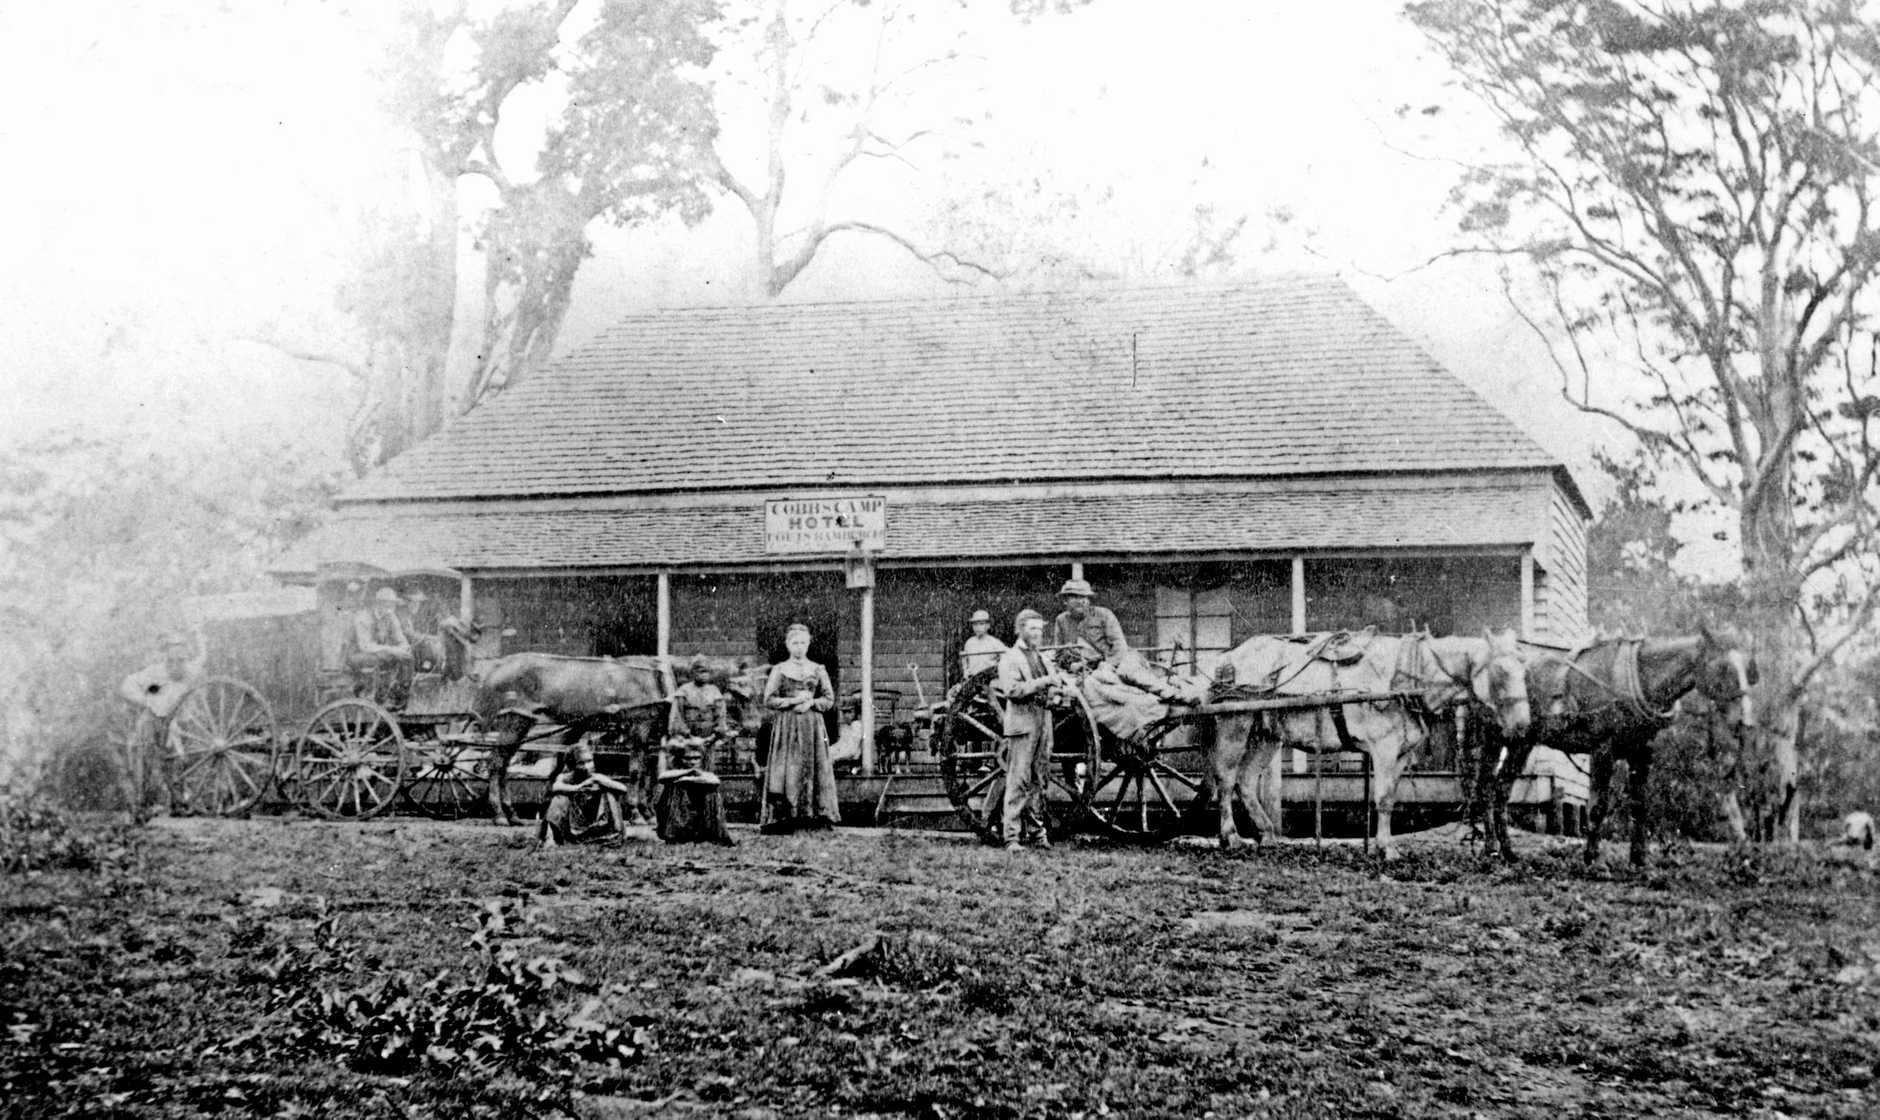 M191619 Cobb & Co. passengers and hotel staff with a coach and buggy in front of Cobb's Camp Hotel, Woombye, 1872. The hotel, together with a keeper's residence, horse stables and horse yard, was established by Cobb & Co. to provide a staging camp and accommodation for passengers following the construction of trafficable road between Brisbane and Gympie in 1868